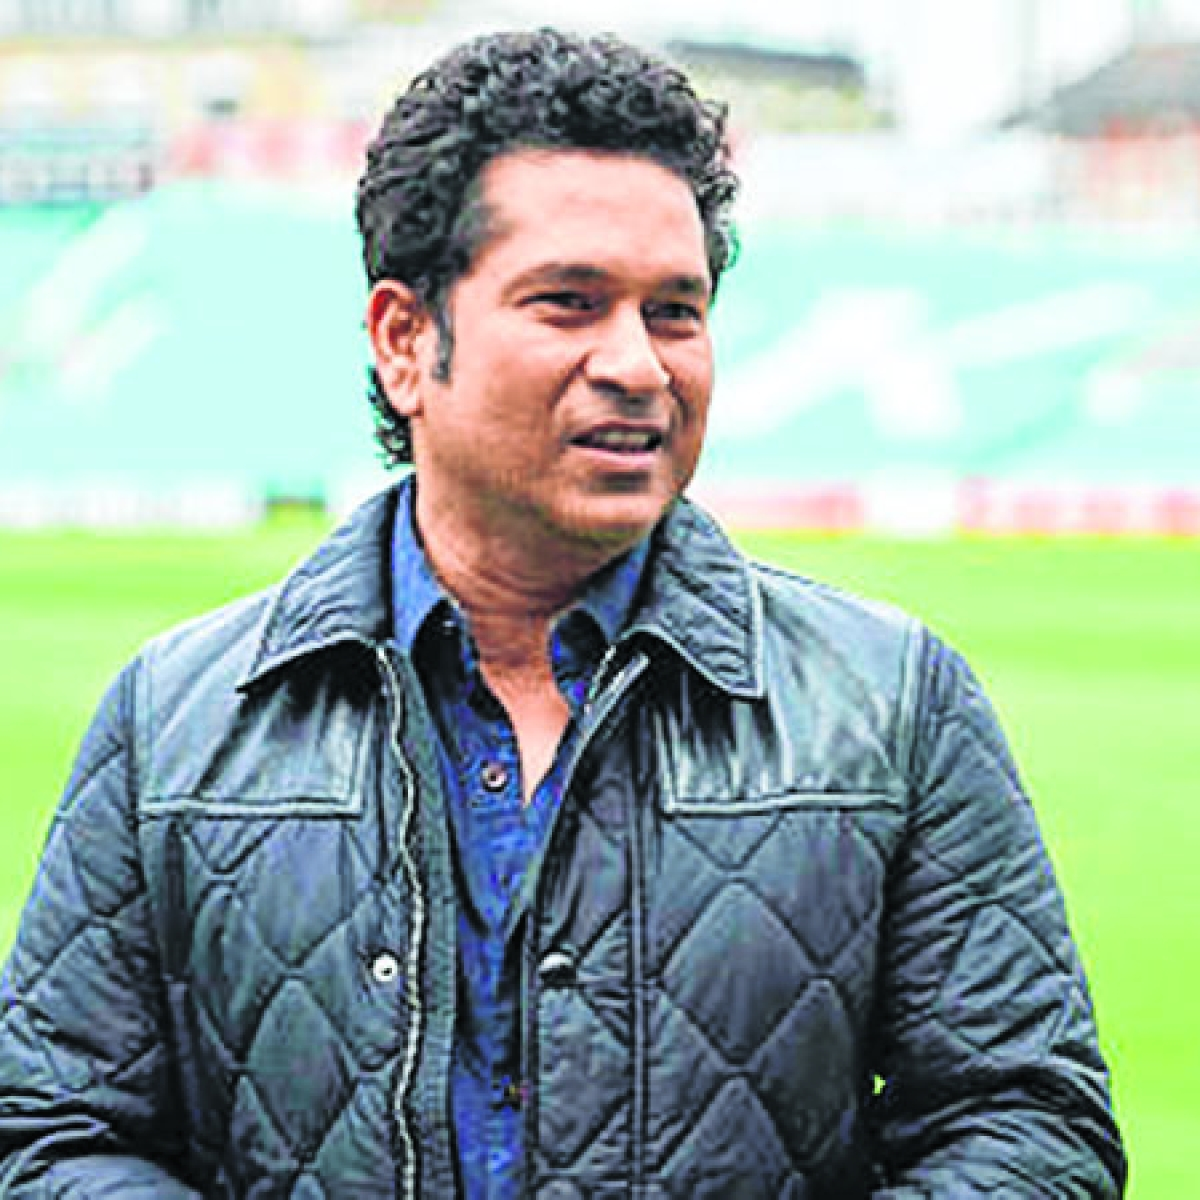 Australia is going to be tough team to handle, but India is ready to face them: Sachin Tendulkar